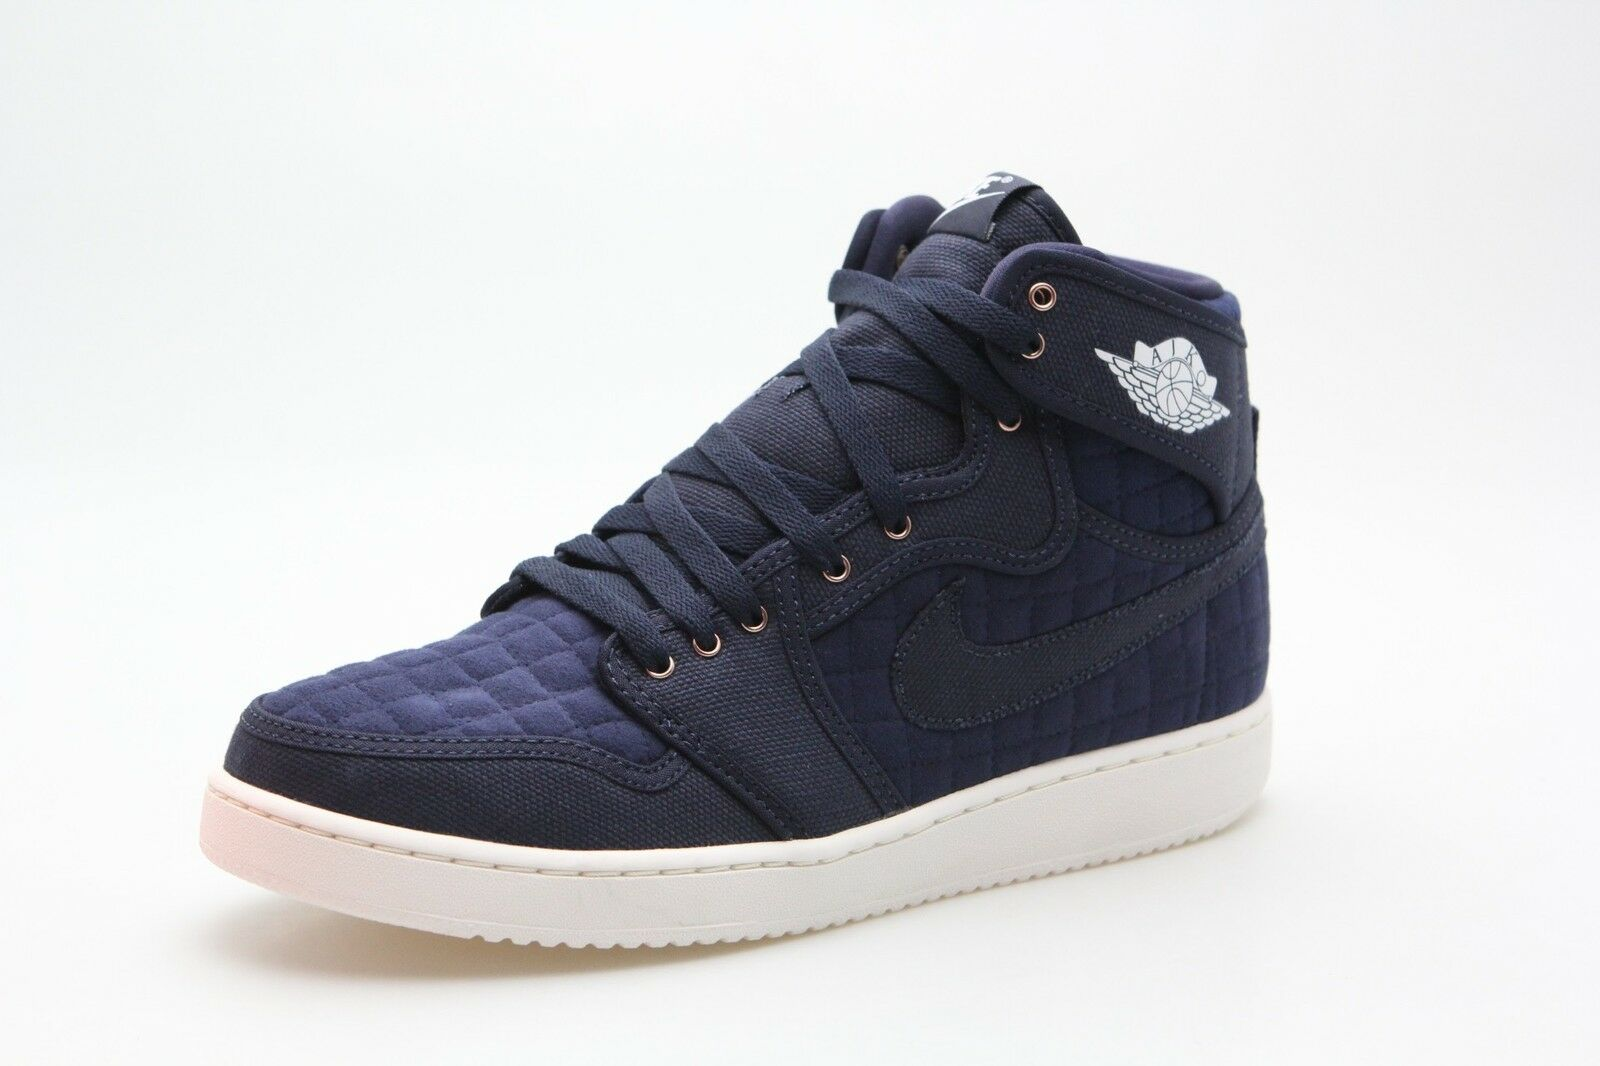 638471-403 Jordan Men Air Jordan 1 KO High OG Obsidian bluee White